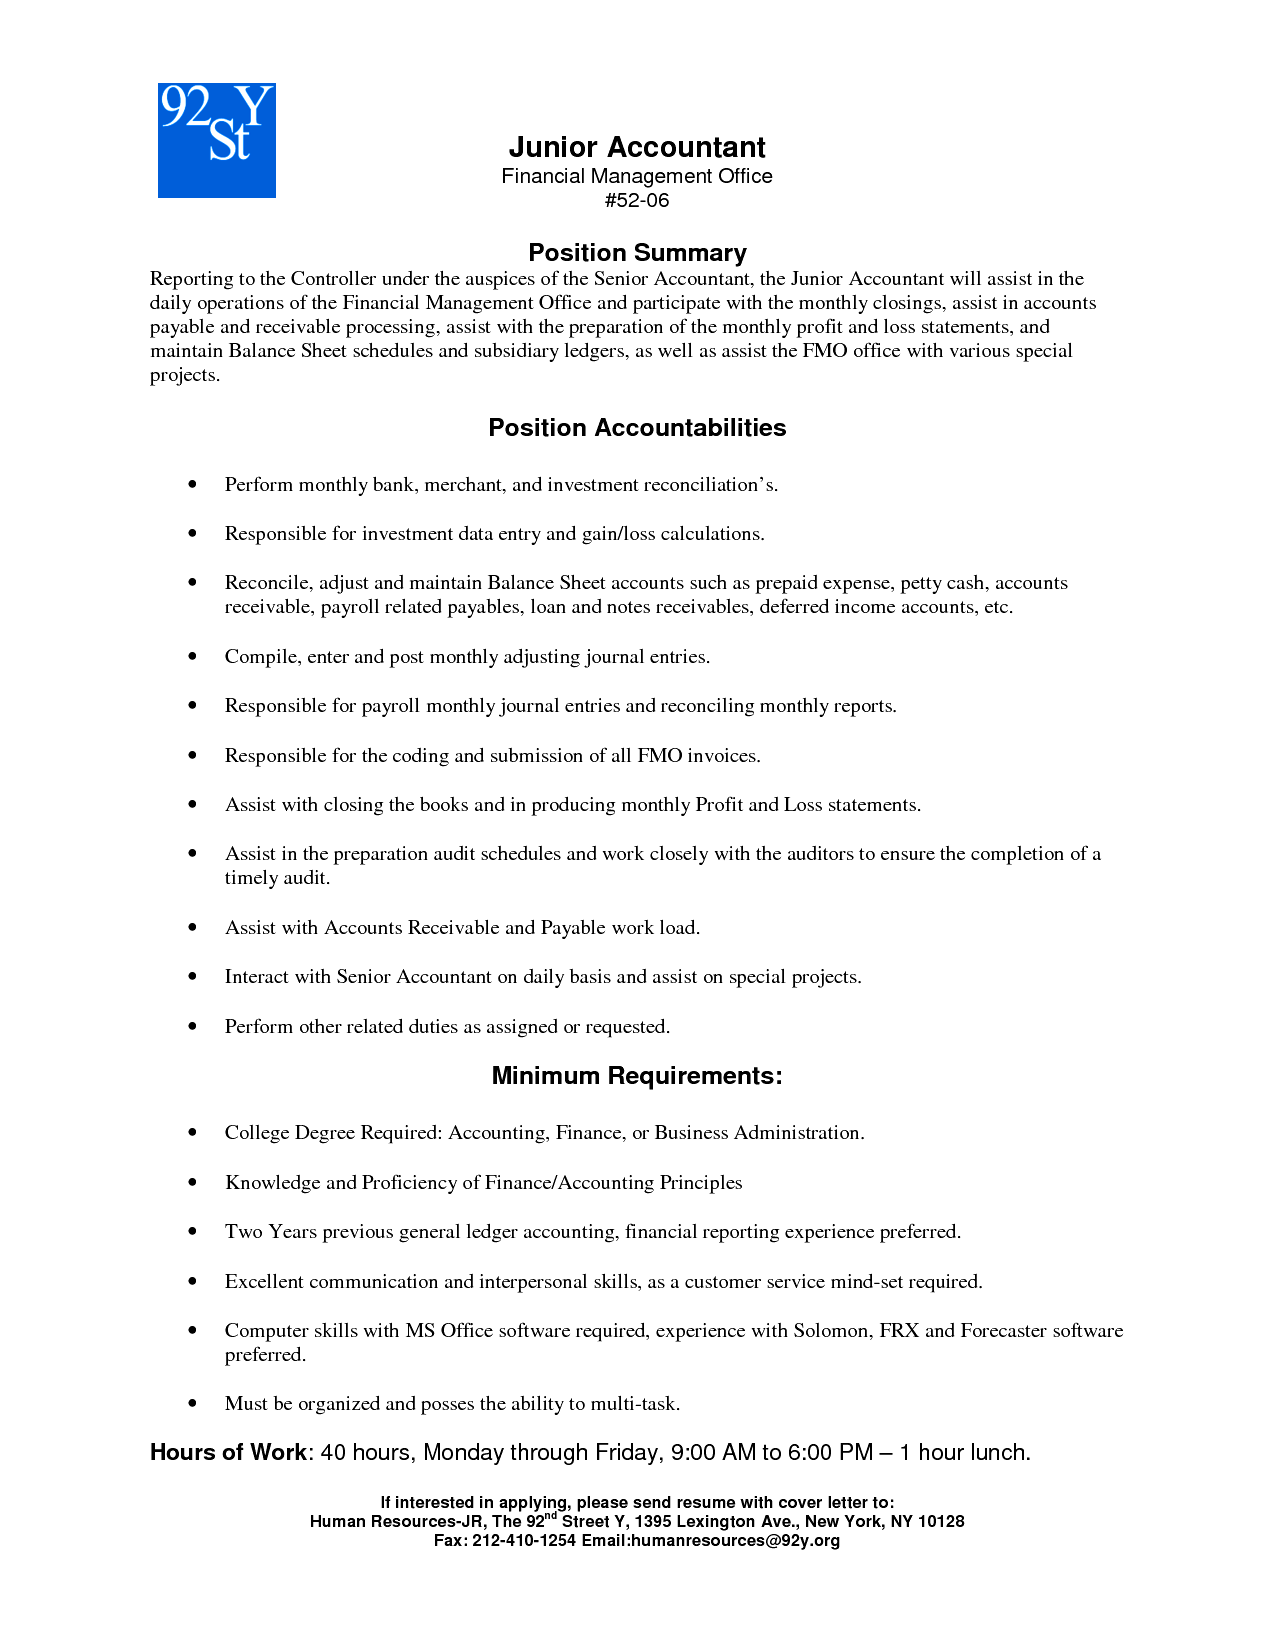 Resume Examples For 92Y ResumeExamples